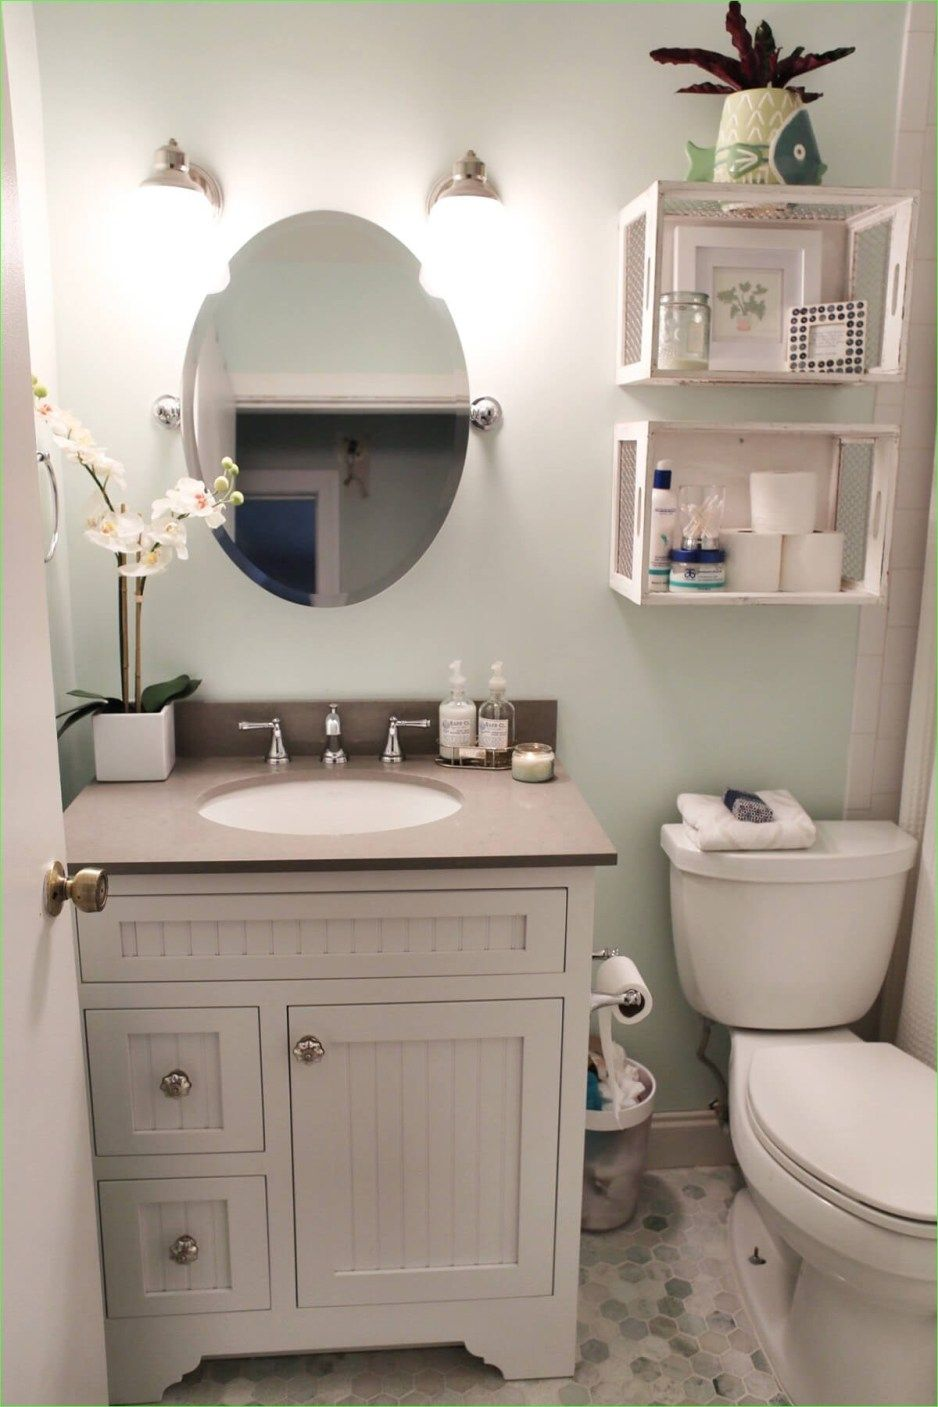 Truuth Living On Instagram Do What You Can With What You Have Where You Are For Daily Inspiration Follow Truuthliving In 2020 Bathroom Decor